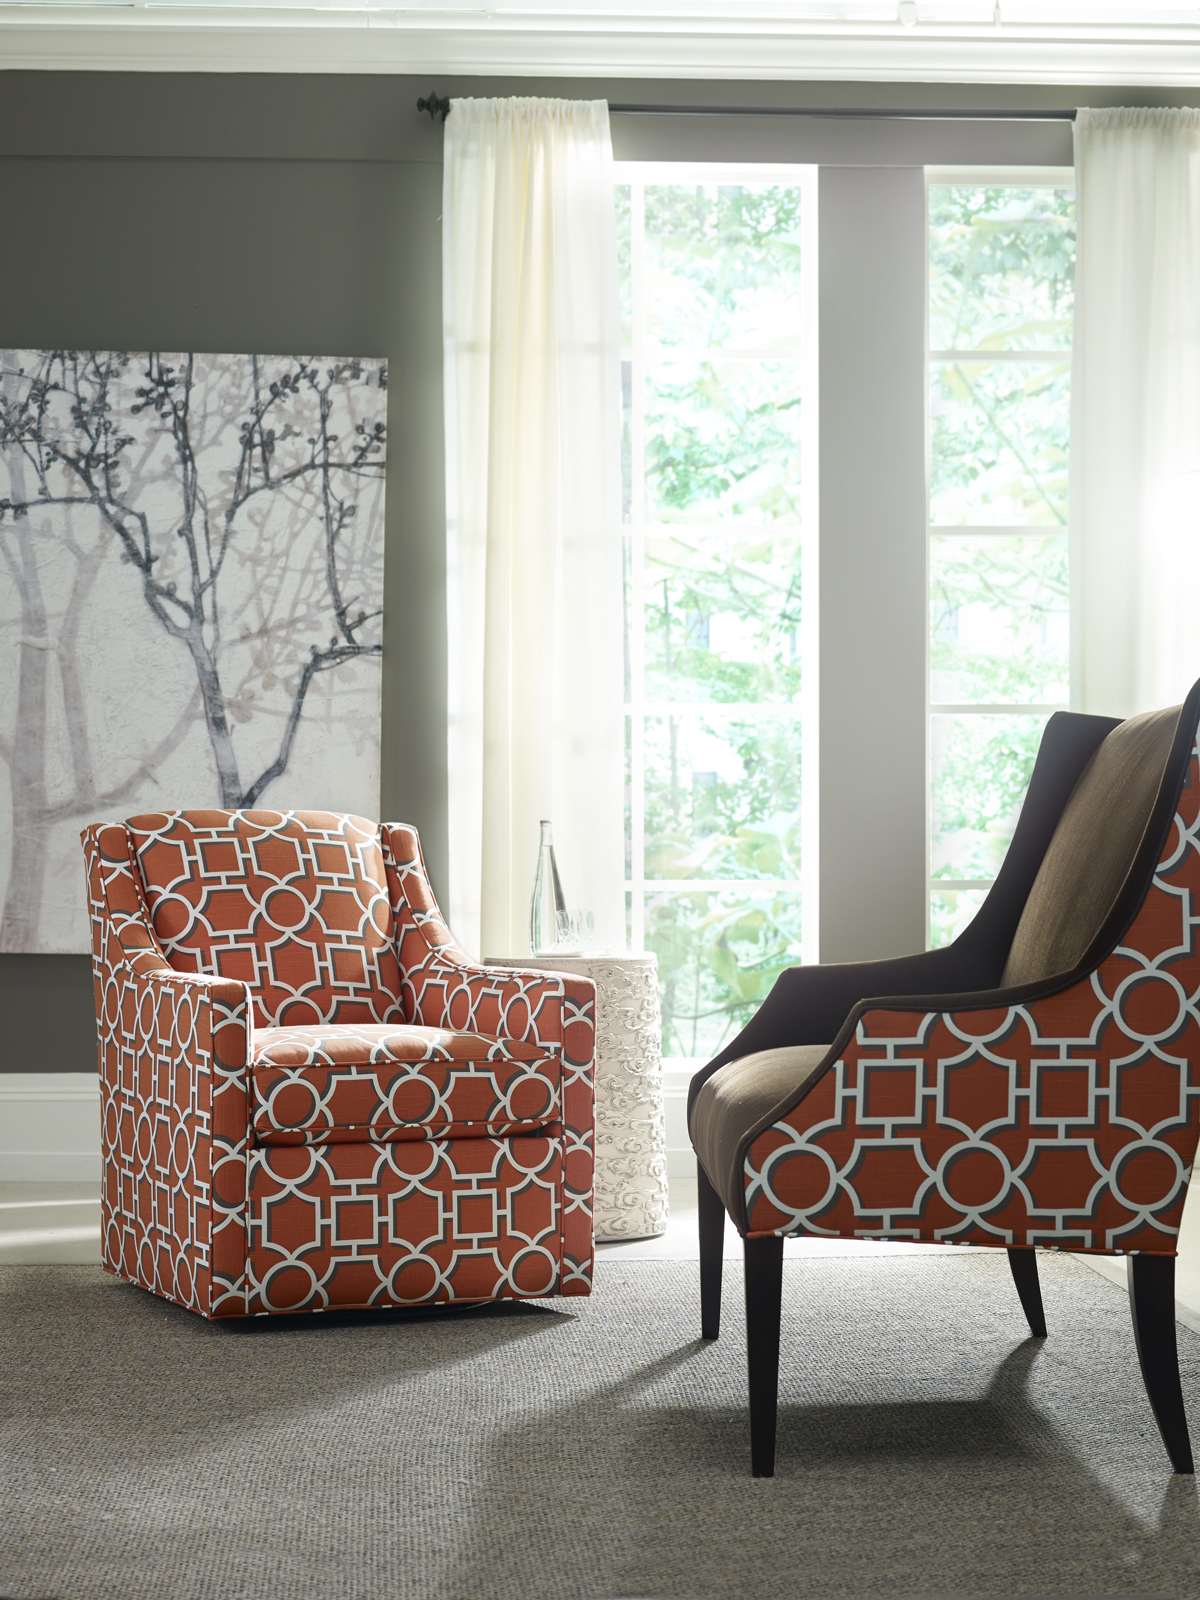 Attrayant Geometric Pattern On Chair, Settee Are Vibrant, Engaging